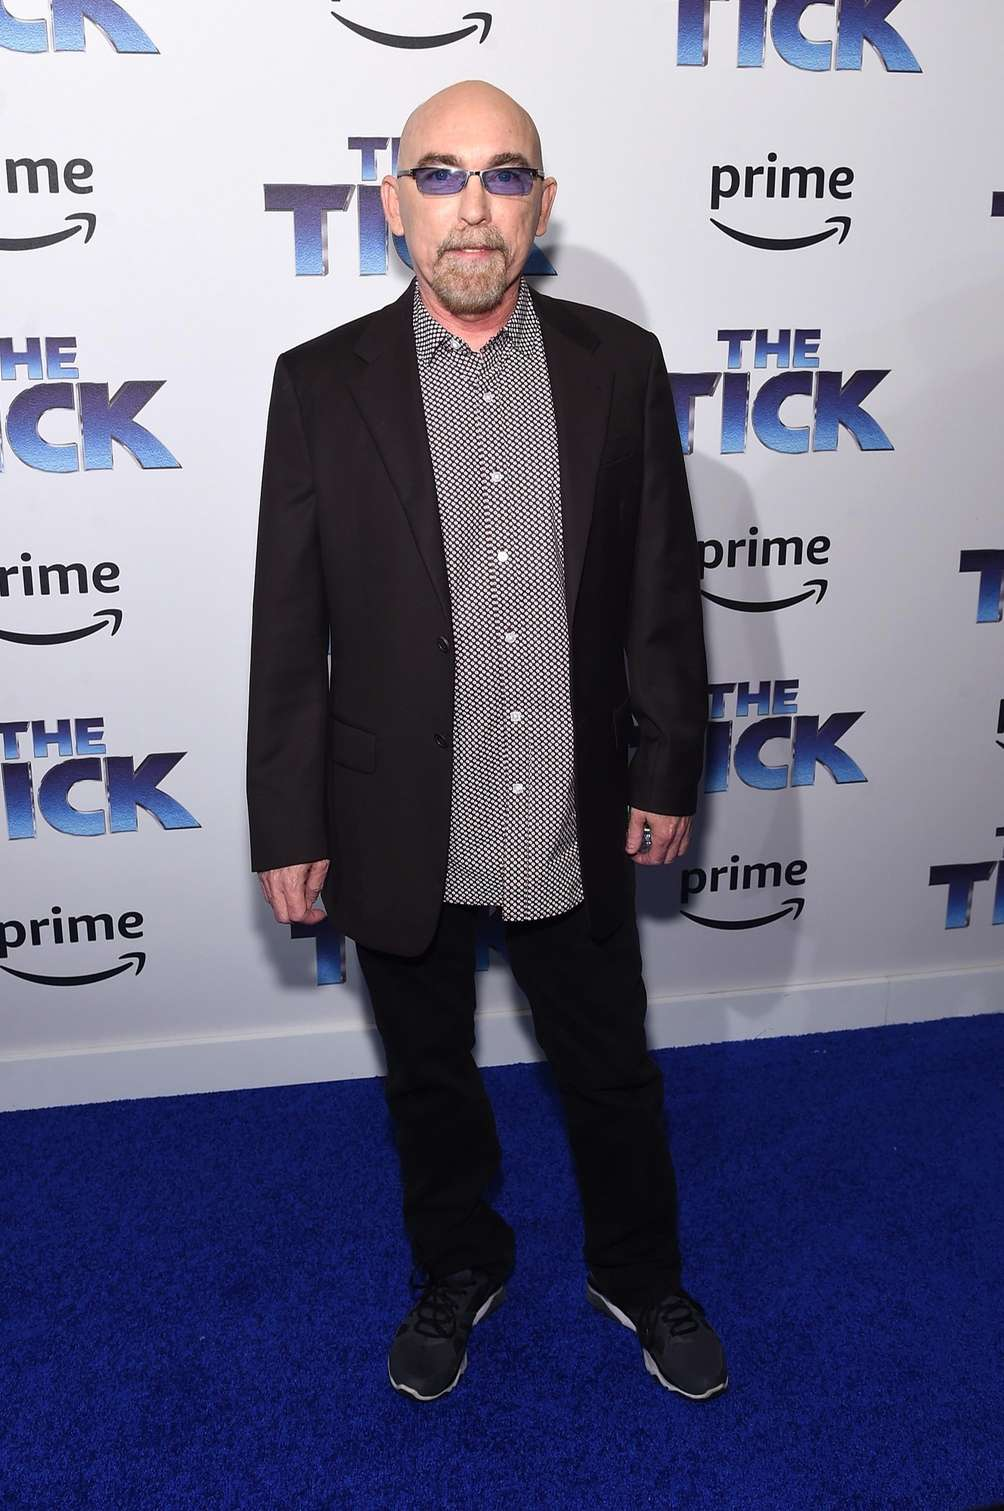 Jackie Earle Haley attends a premiere showing of